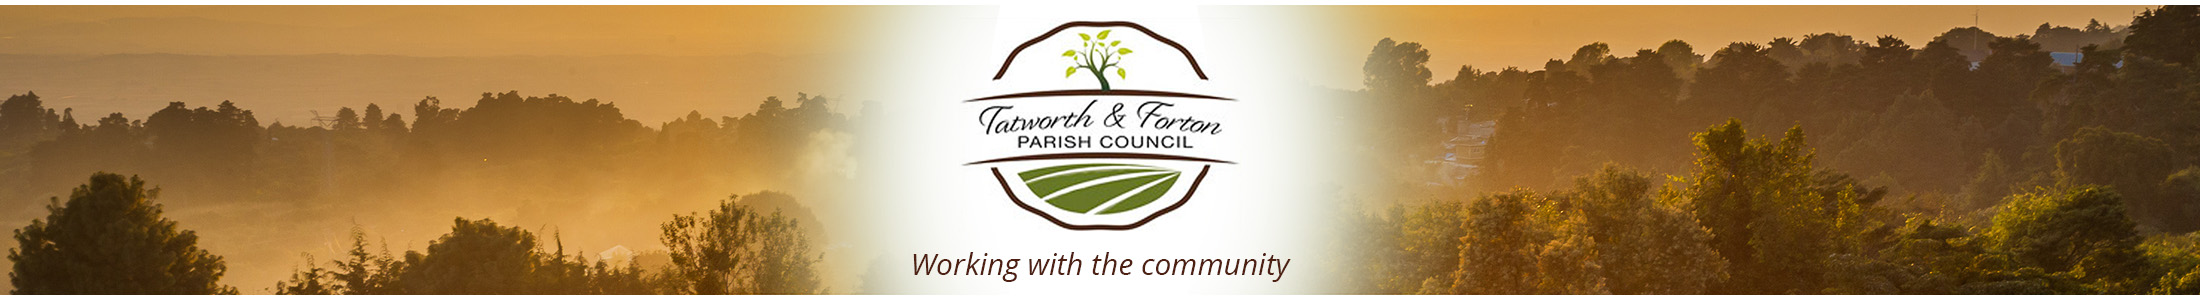 Header Image for Tatworth & Forton Parish Council